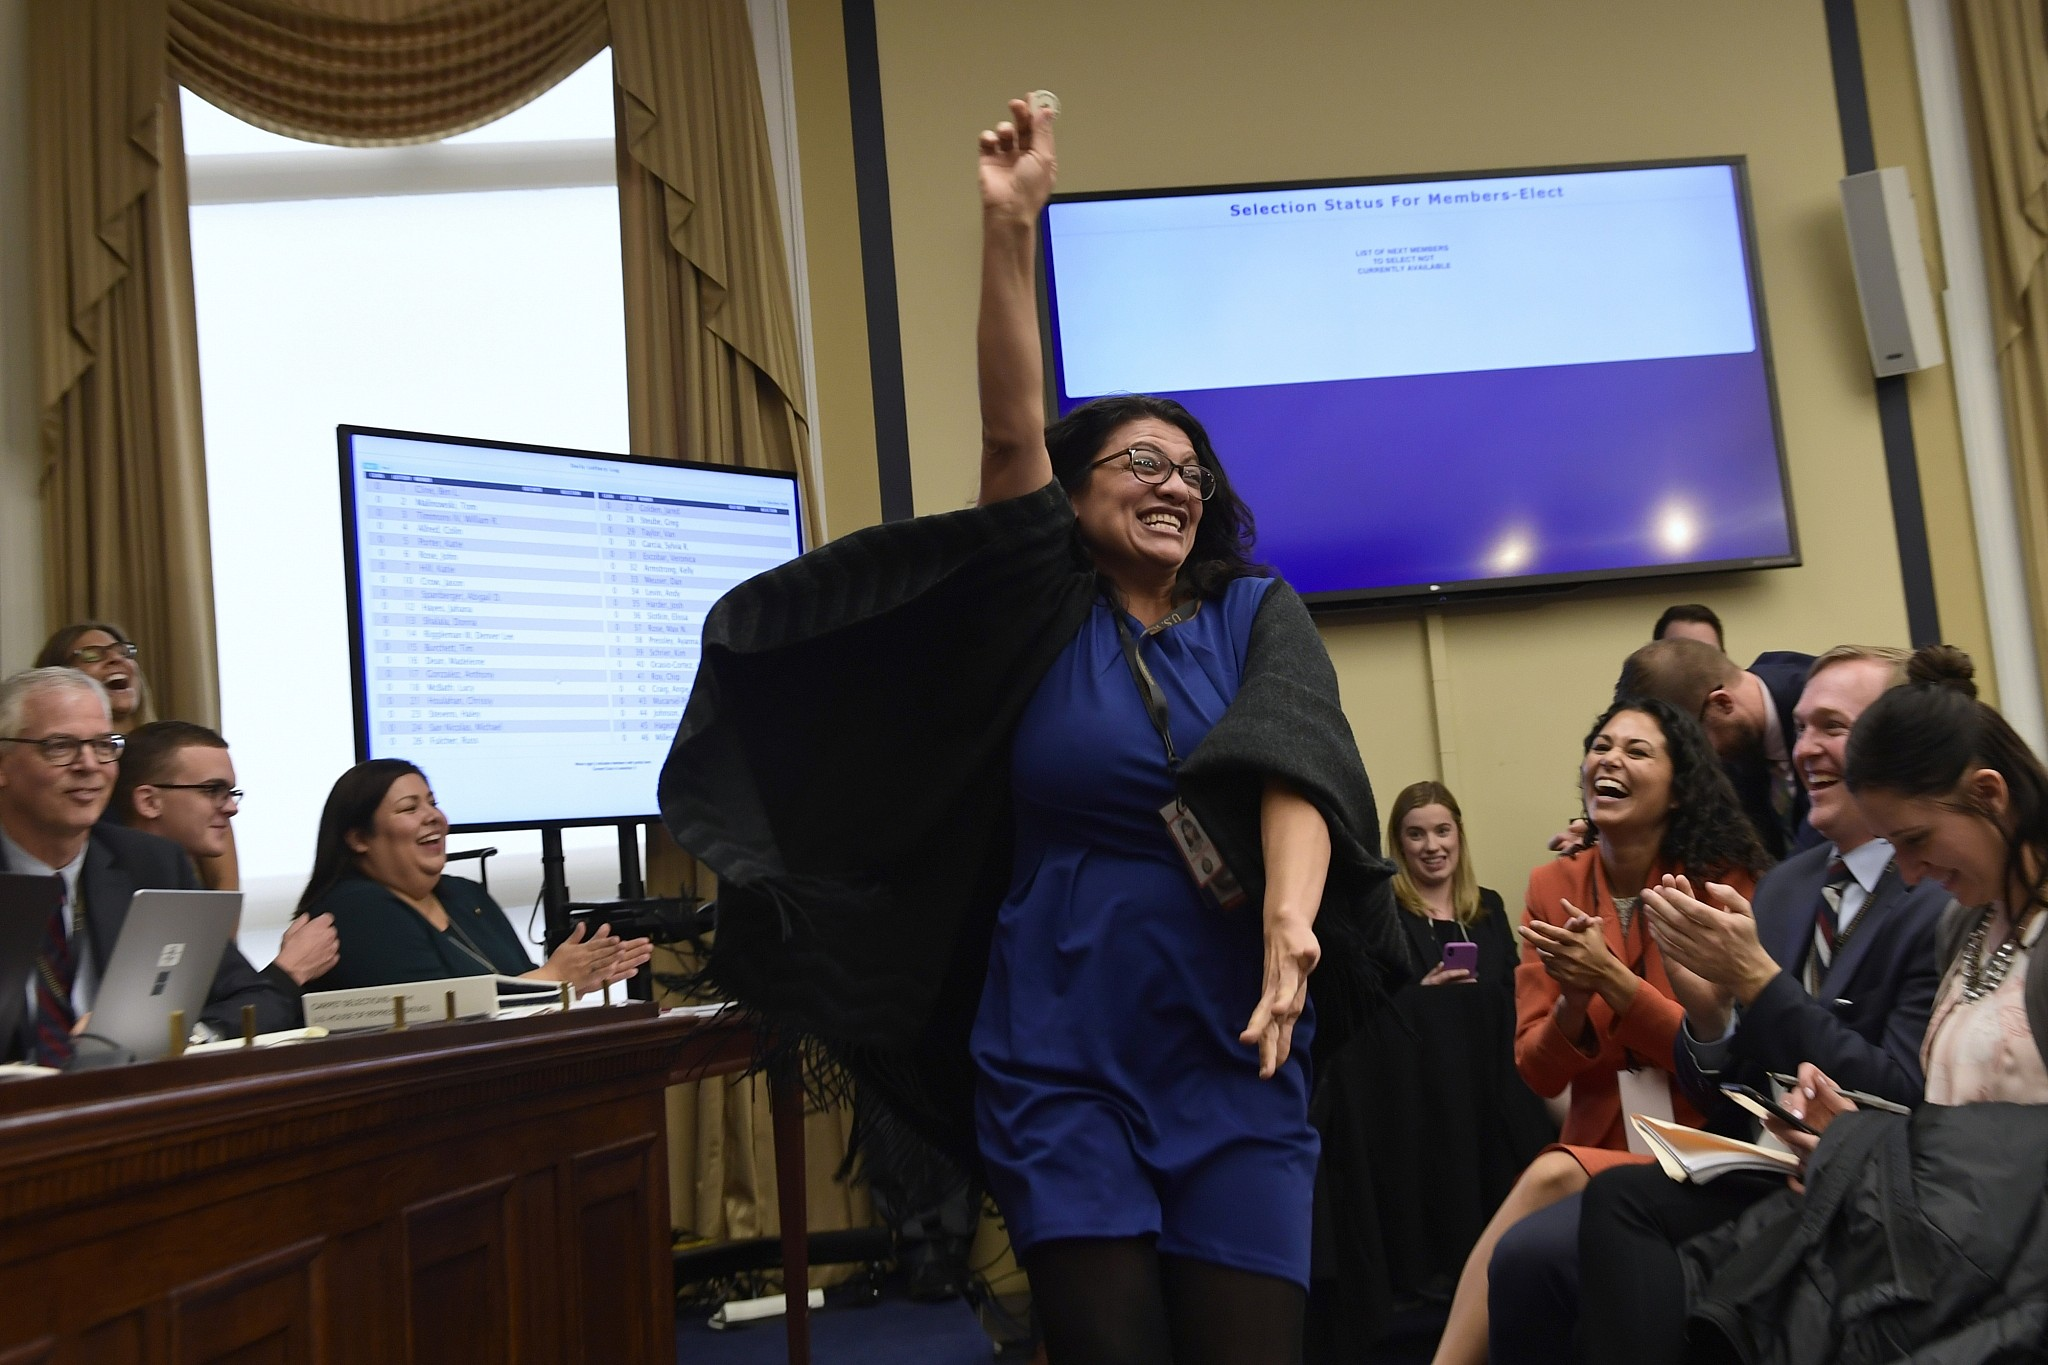 Palestinian US Congresswoman Rashida Tlaib Curses Donald Trump 1st Day in Office